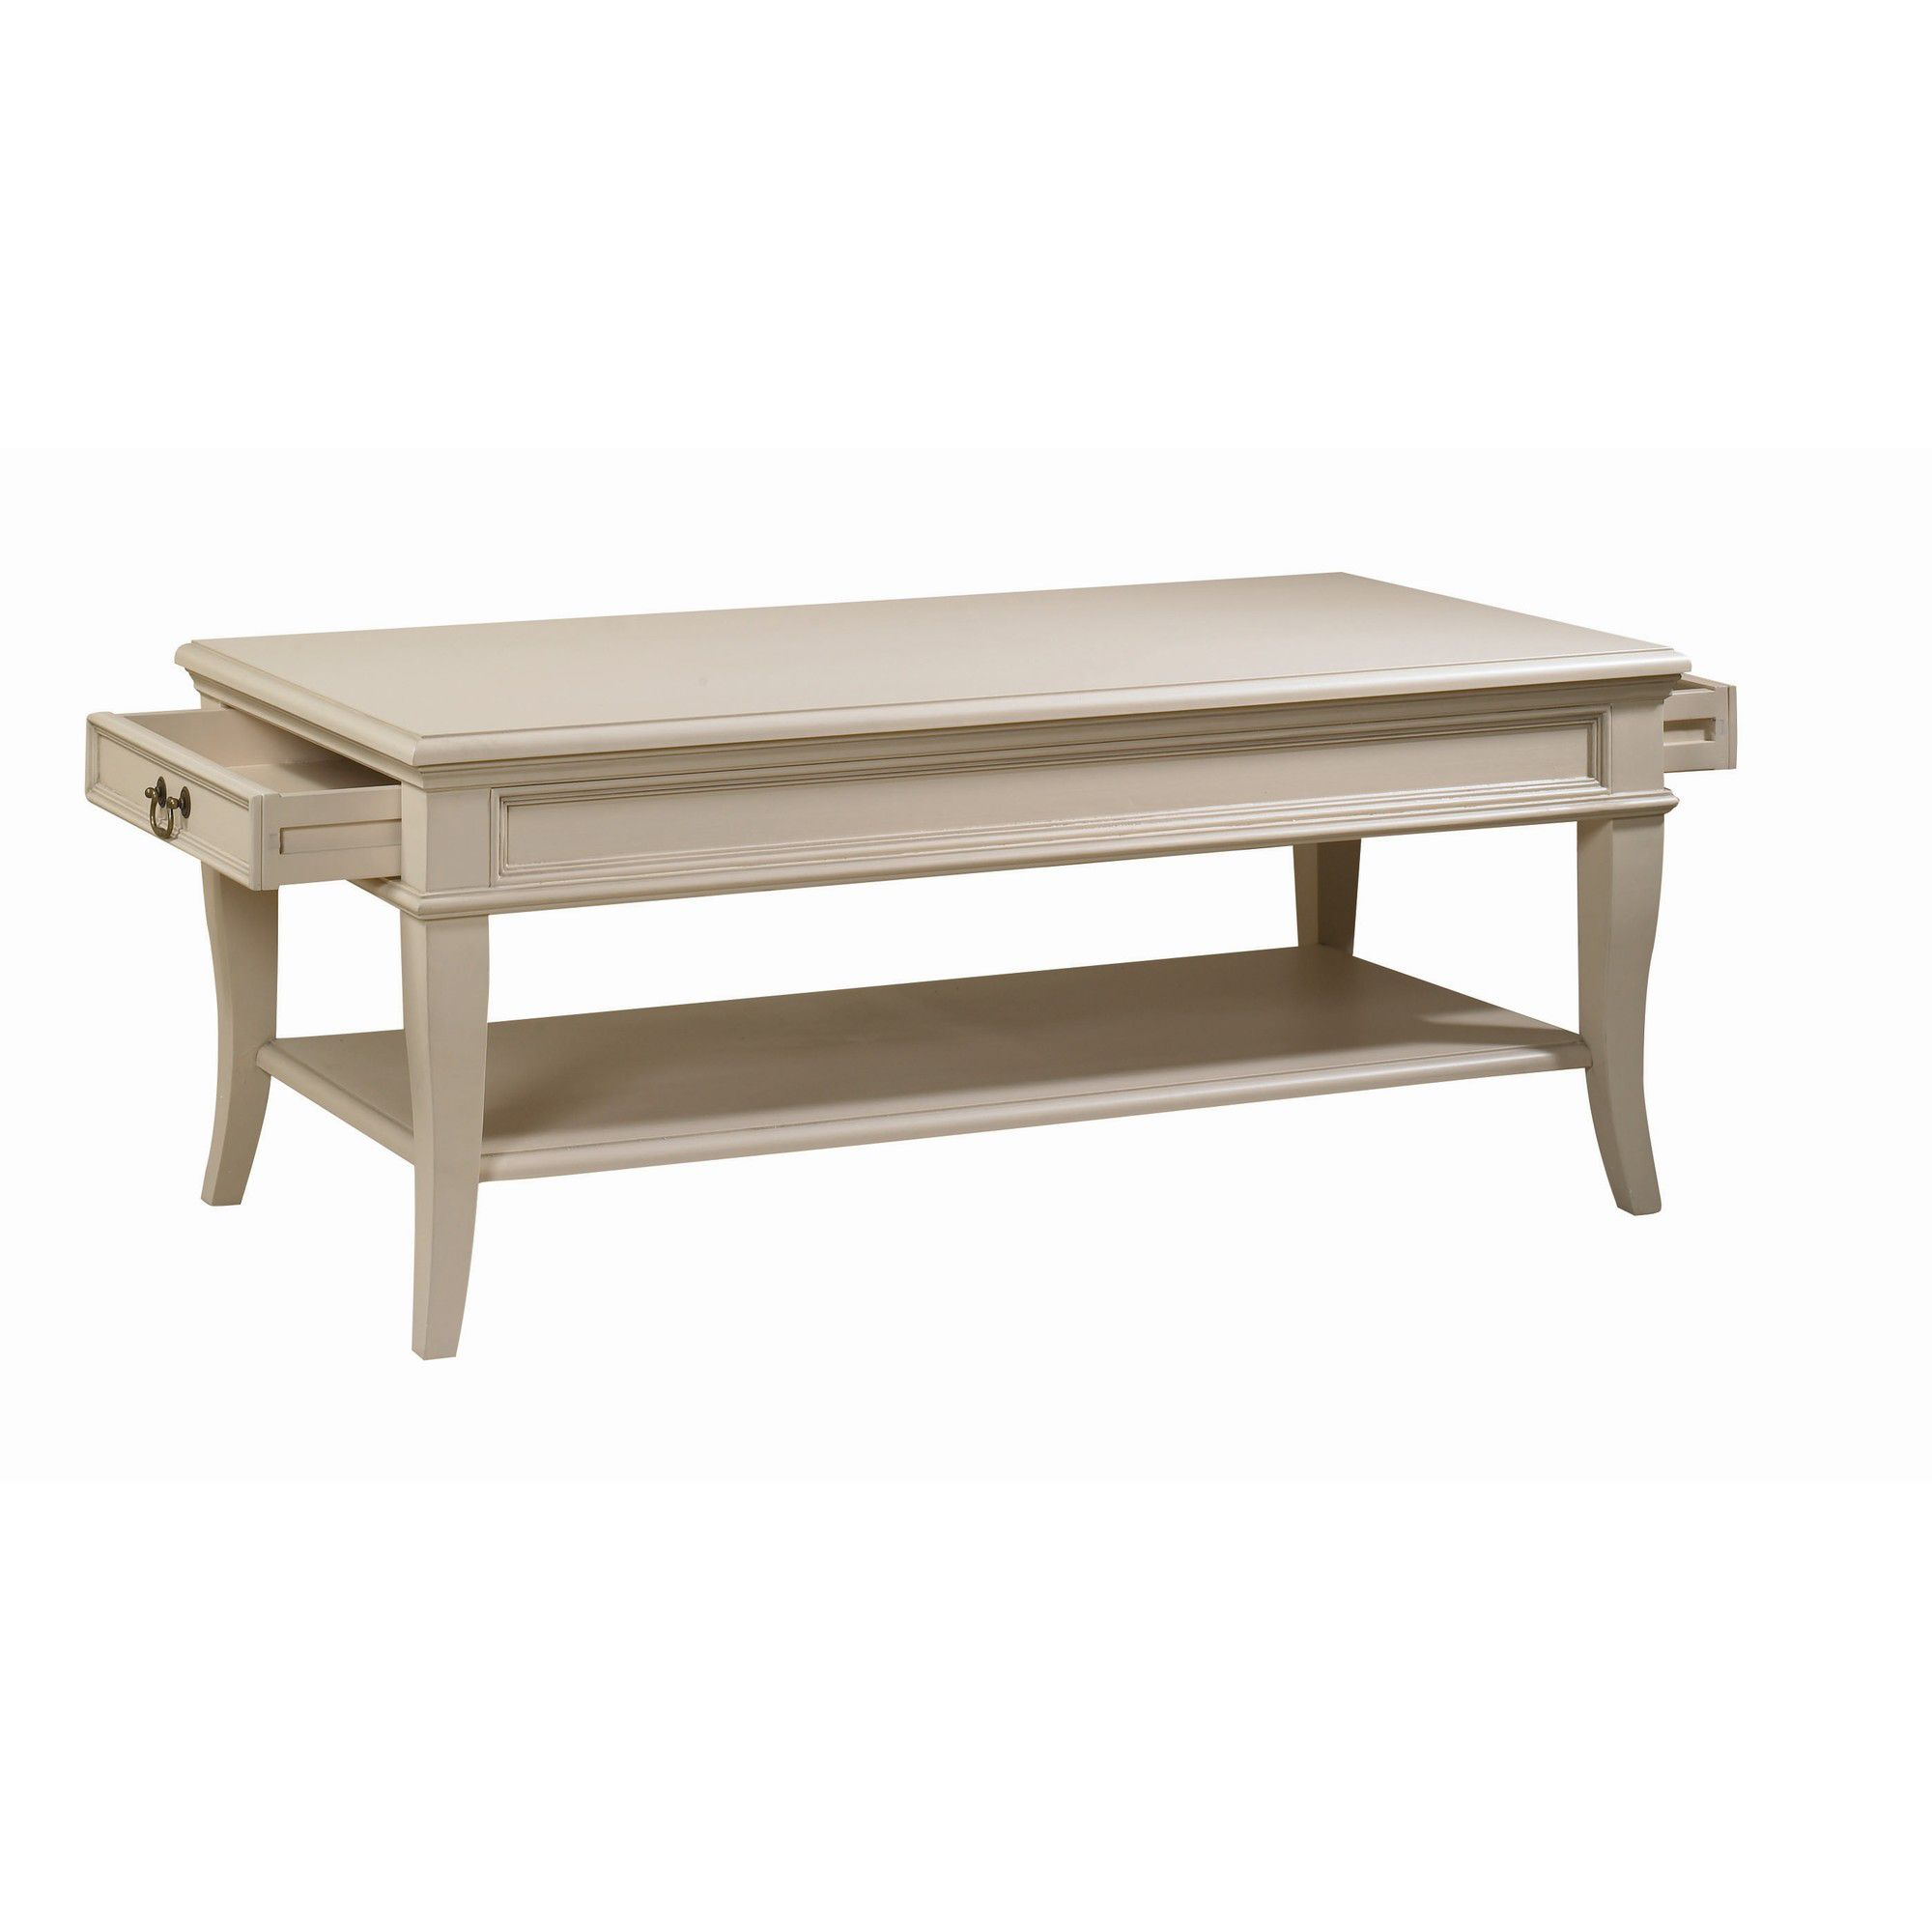 YP Furniture Country House Coffee Table - Ivory at Tesco Direct